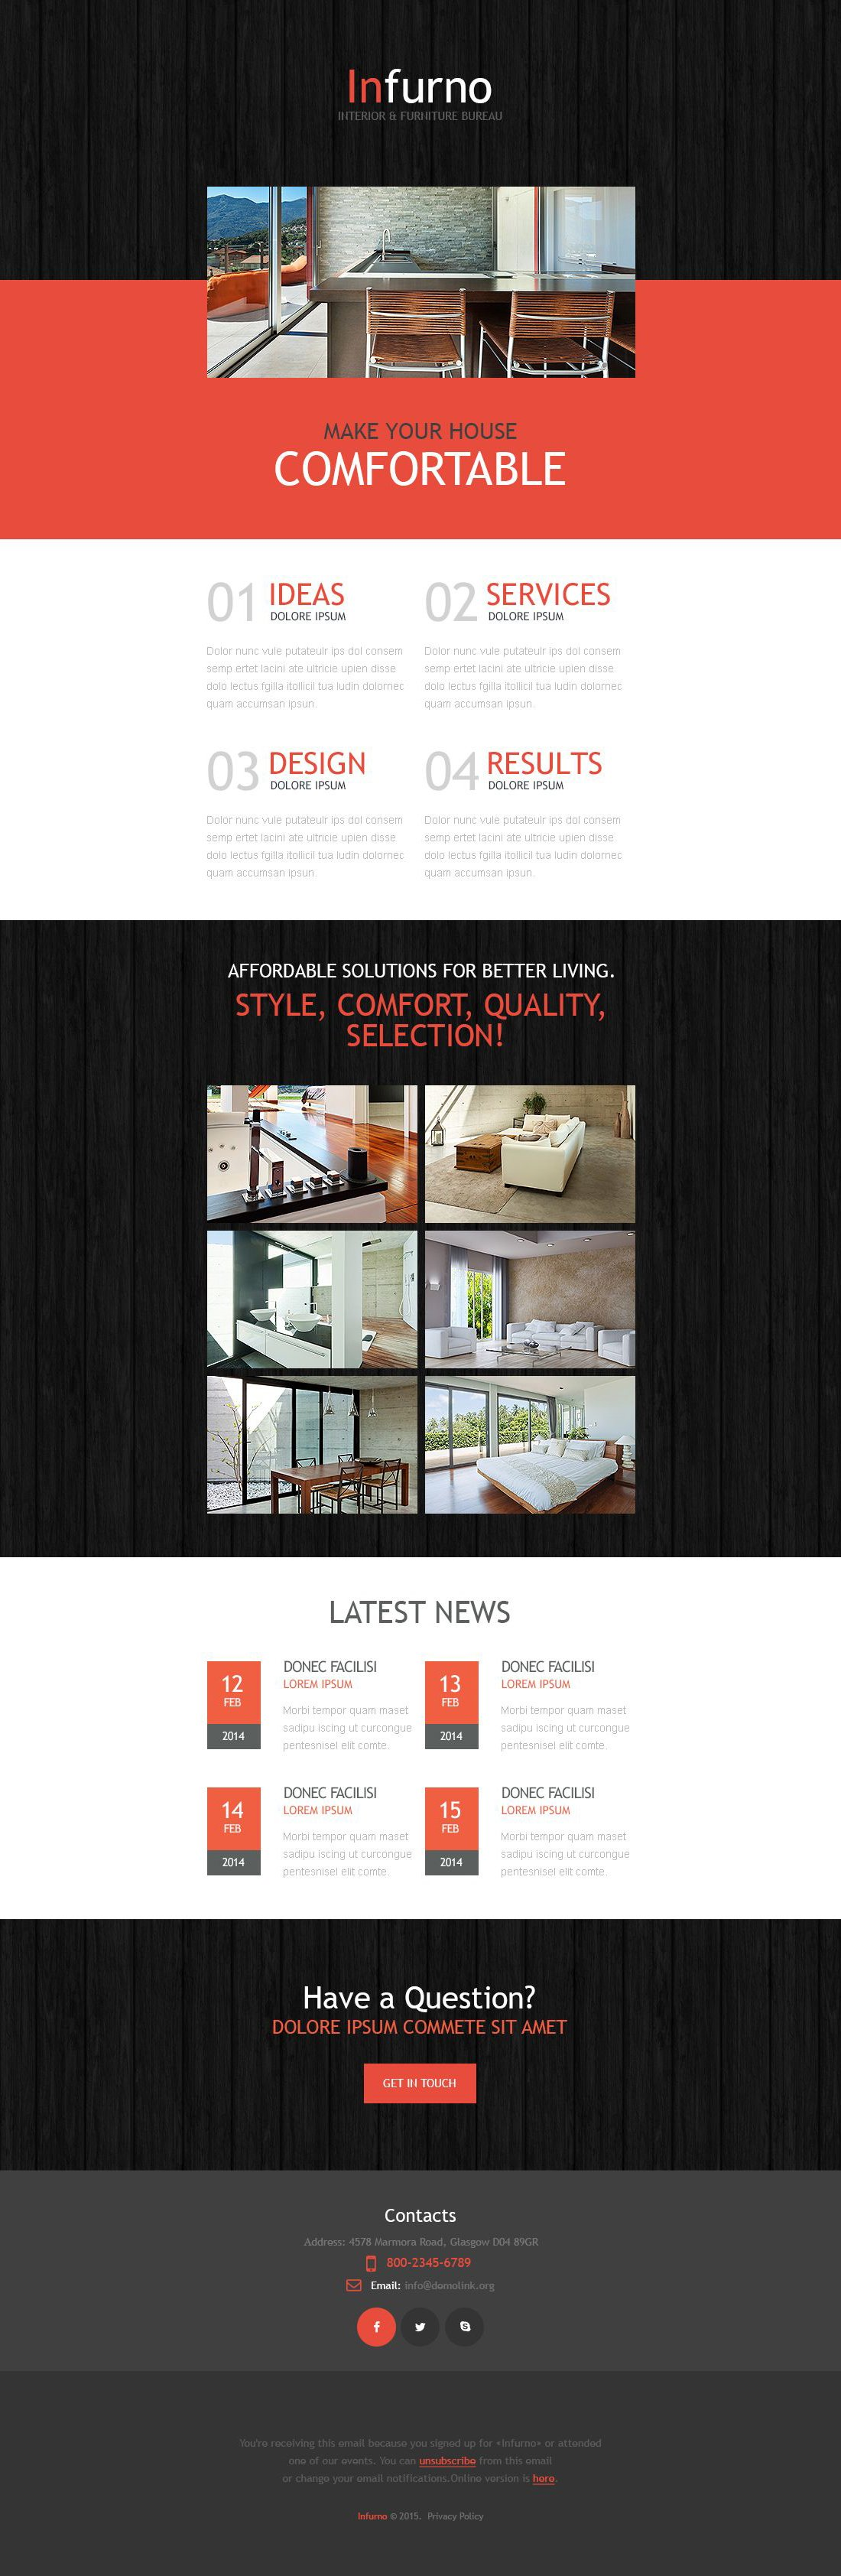 The Infurno Furniture Company Design Newsletter Template Design 53966, one of the best Newsletter templates of its kind (interior & furniture, most popular), also known as infurno furniture company design Newsletter template, home solution Newsletter template, interior Newsletter template, profile designer Newsletter template, portfolio Newsletter template, non-standard Newsletter template, creative idea Newsletter template, mirror Newsletter template, clock Newsletter template, cutlery Newsletter template, lighting Newsletter template, ceiling Newsletter template, bathroom Newsletter template, kitchen Newsletter template, live Newsletter template, table Newsletter template, chair Newsletter template, armchair Newsletter template, sofa Newsletter template, order Newsletter template, client Newsletter template, support Newsletter template, service Newsletter template, decoration Newsletter template, style Newsletter template, collection Newsletter template, catalogue and related with infurno furniture company design, home solution, interior, profile designer, portfolio, non-standard, creative idea, mirror, clock, cutlery, lighting, ceiling, bathroom, kitchen, live, table, chair, armchair, sofa, order, client, support, service, decoration, style, collection, catalogue, etc.